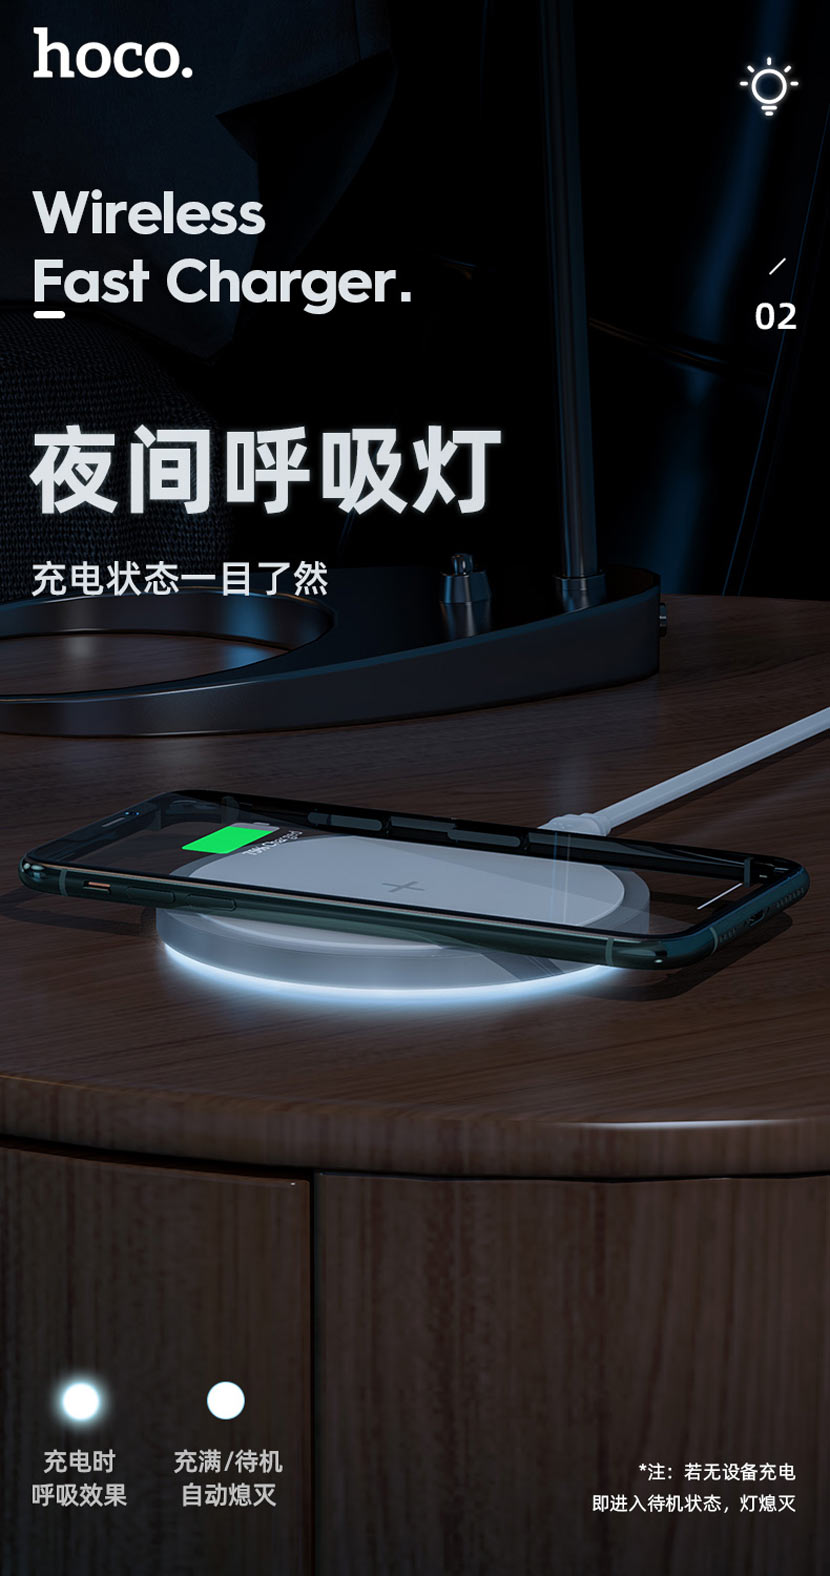 hoco news cw26 powerful 15w wireless fast charger light cn